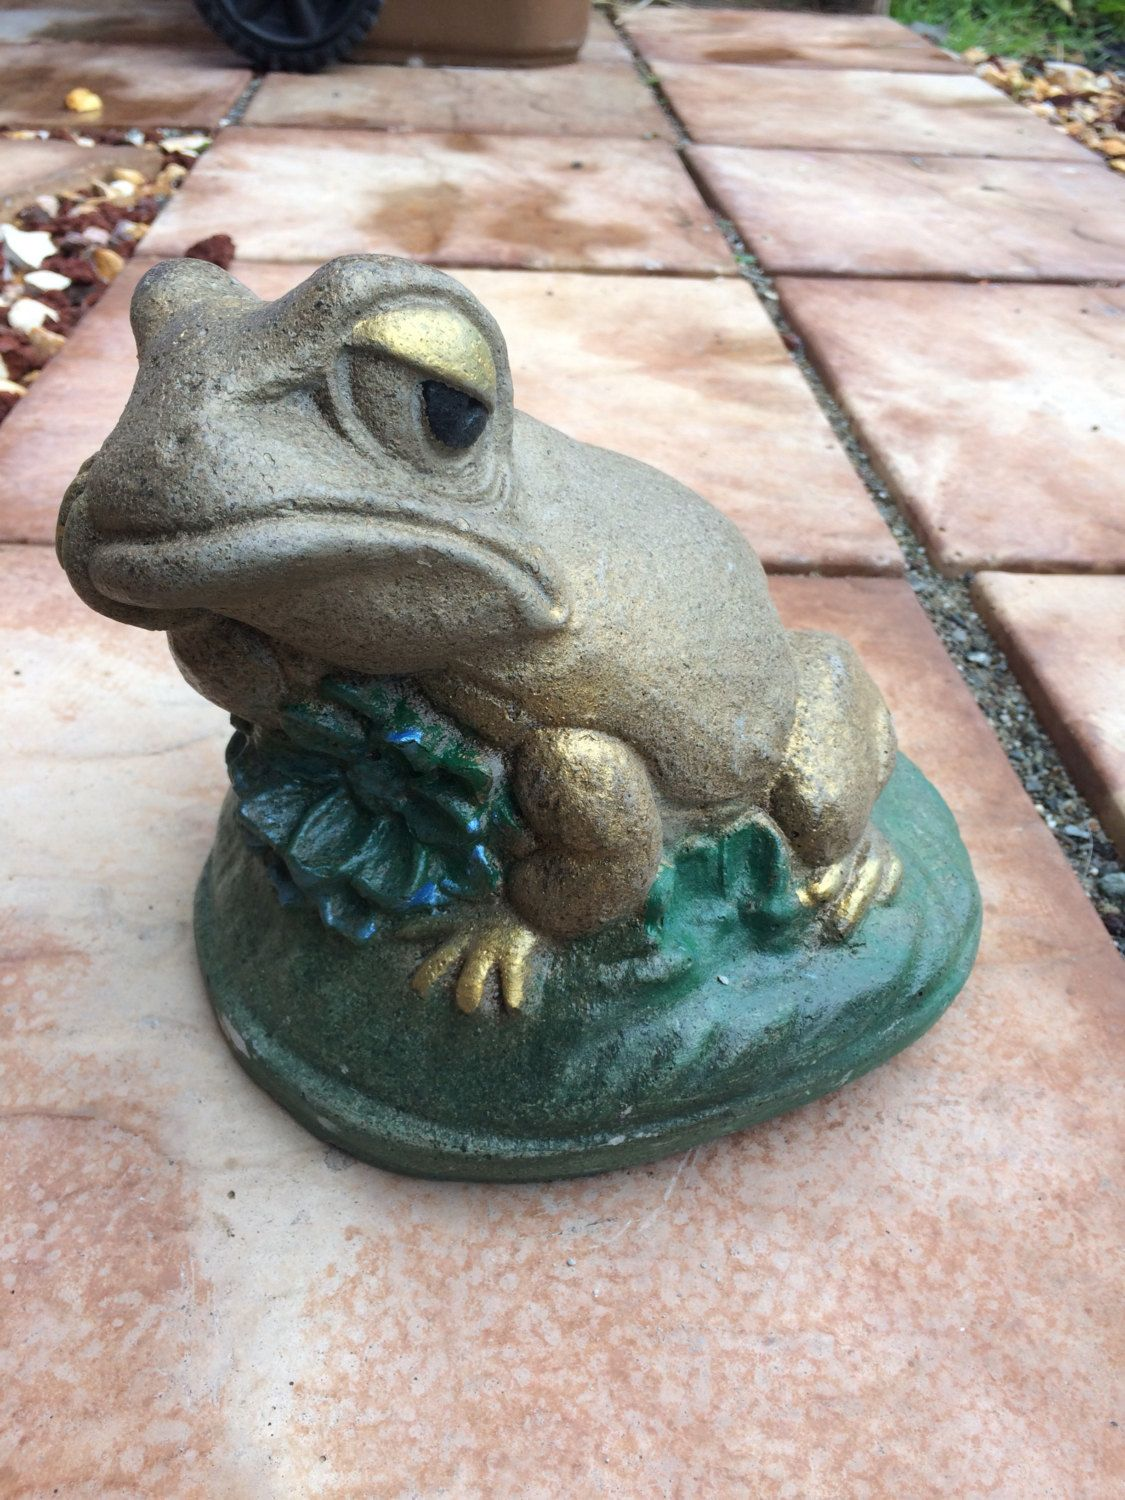 Thinking Frog Garden Yard Patio Decor Concrete Statue By  ConcreteCreations66 On Etsy #cement #statue #garden #decor